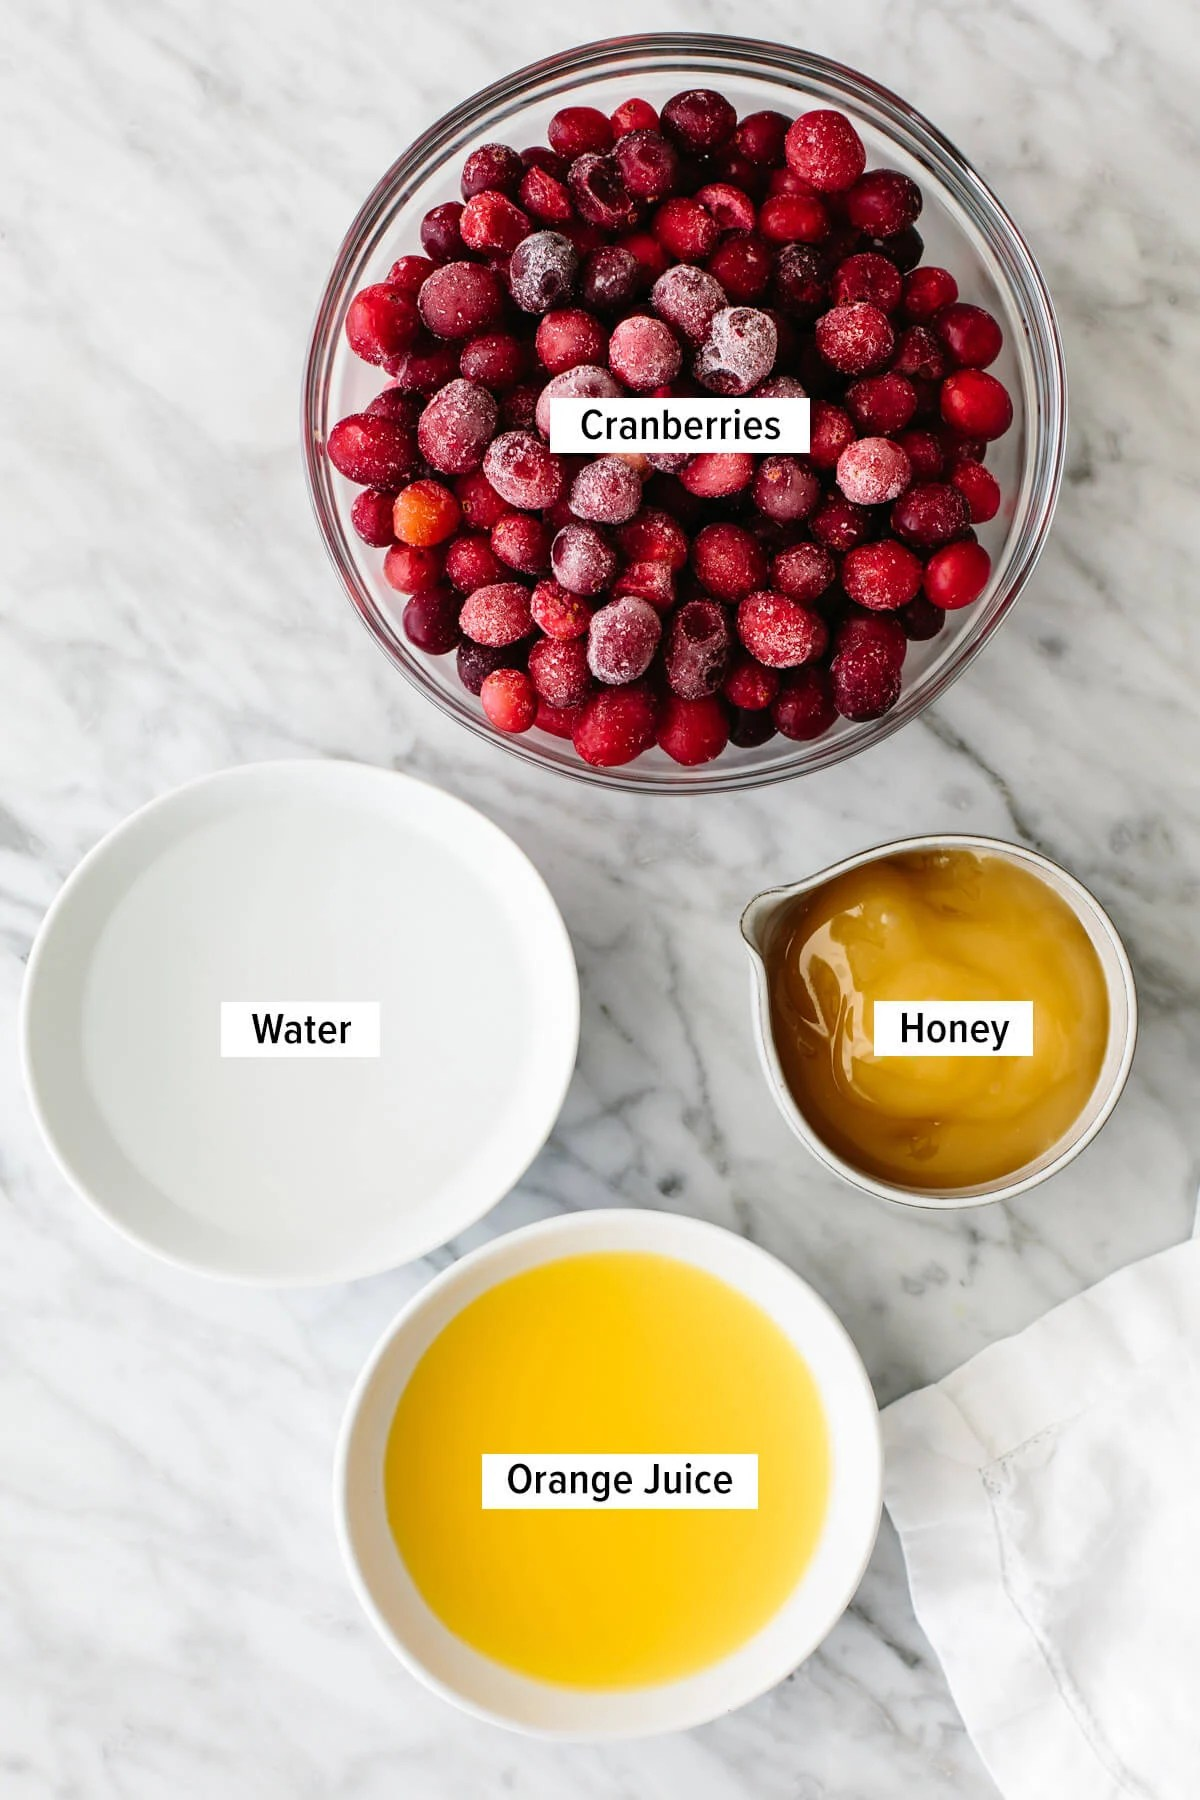 Ingredients for cranberry sauce on a table.